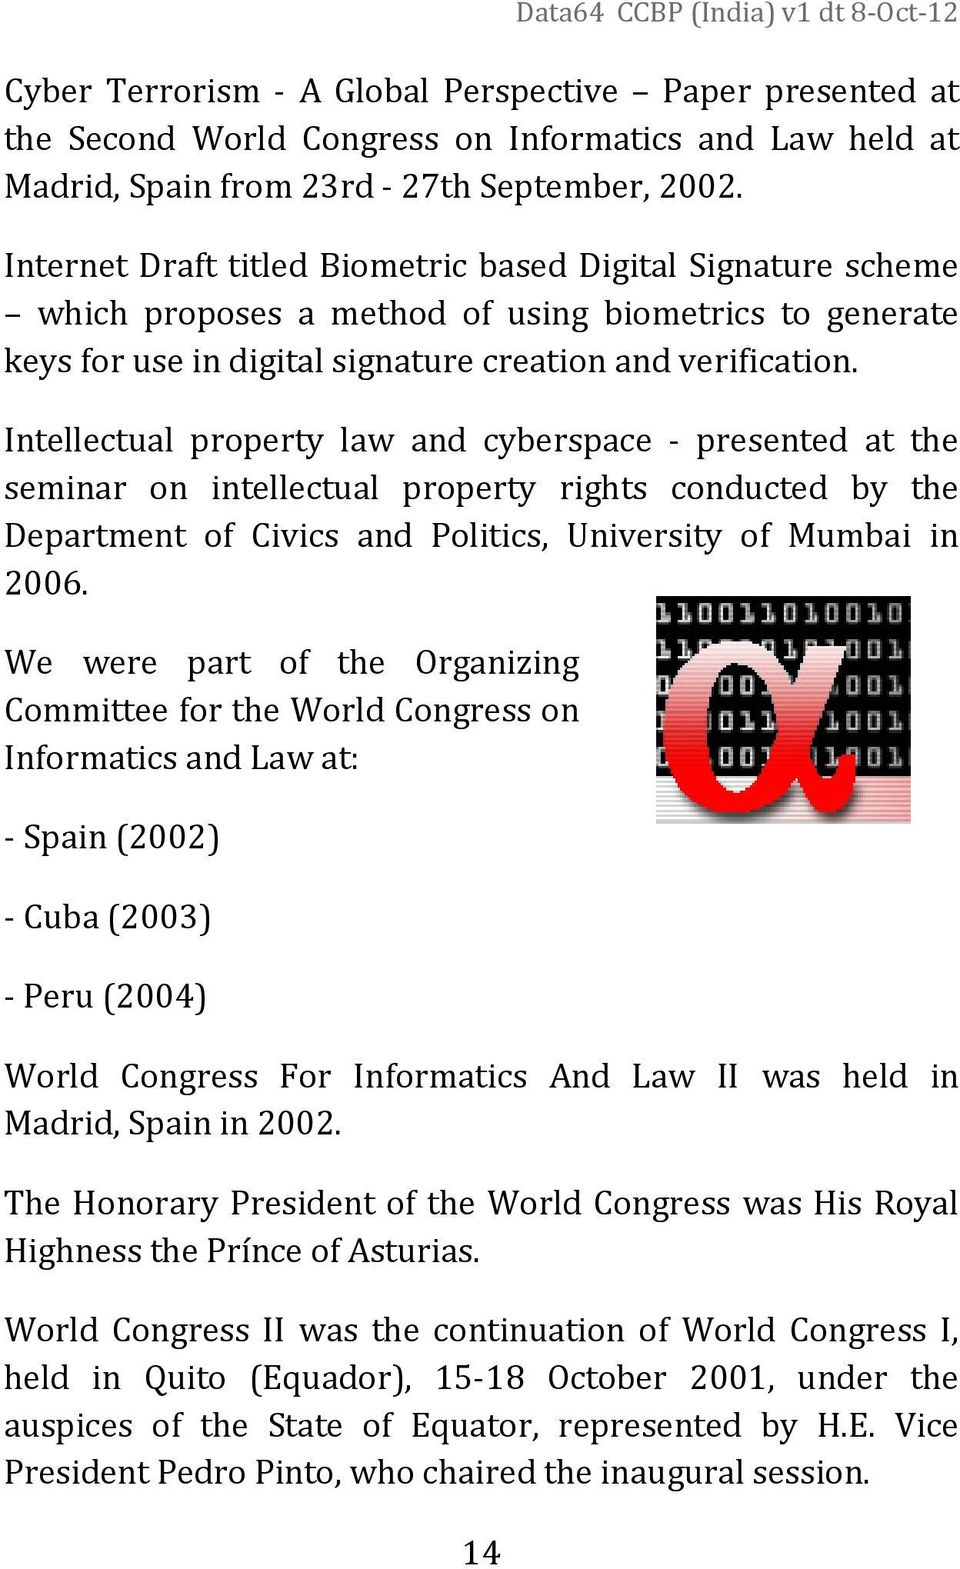 Intellectual property law and cyberspace - presented at the seminar on intellectual property rights conducted by the Department of Civics and Politics, University of Mumbai in 2006.